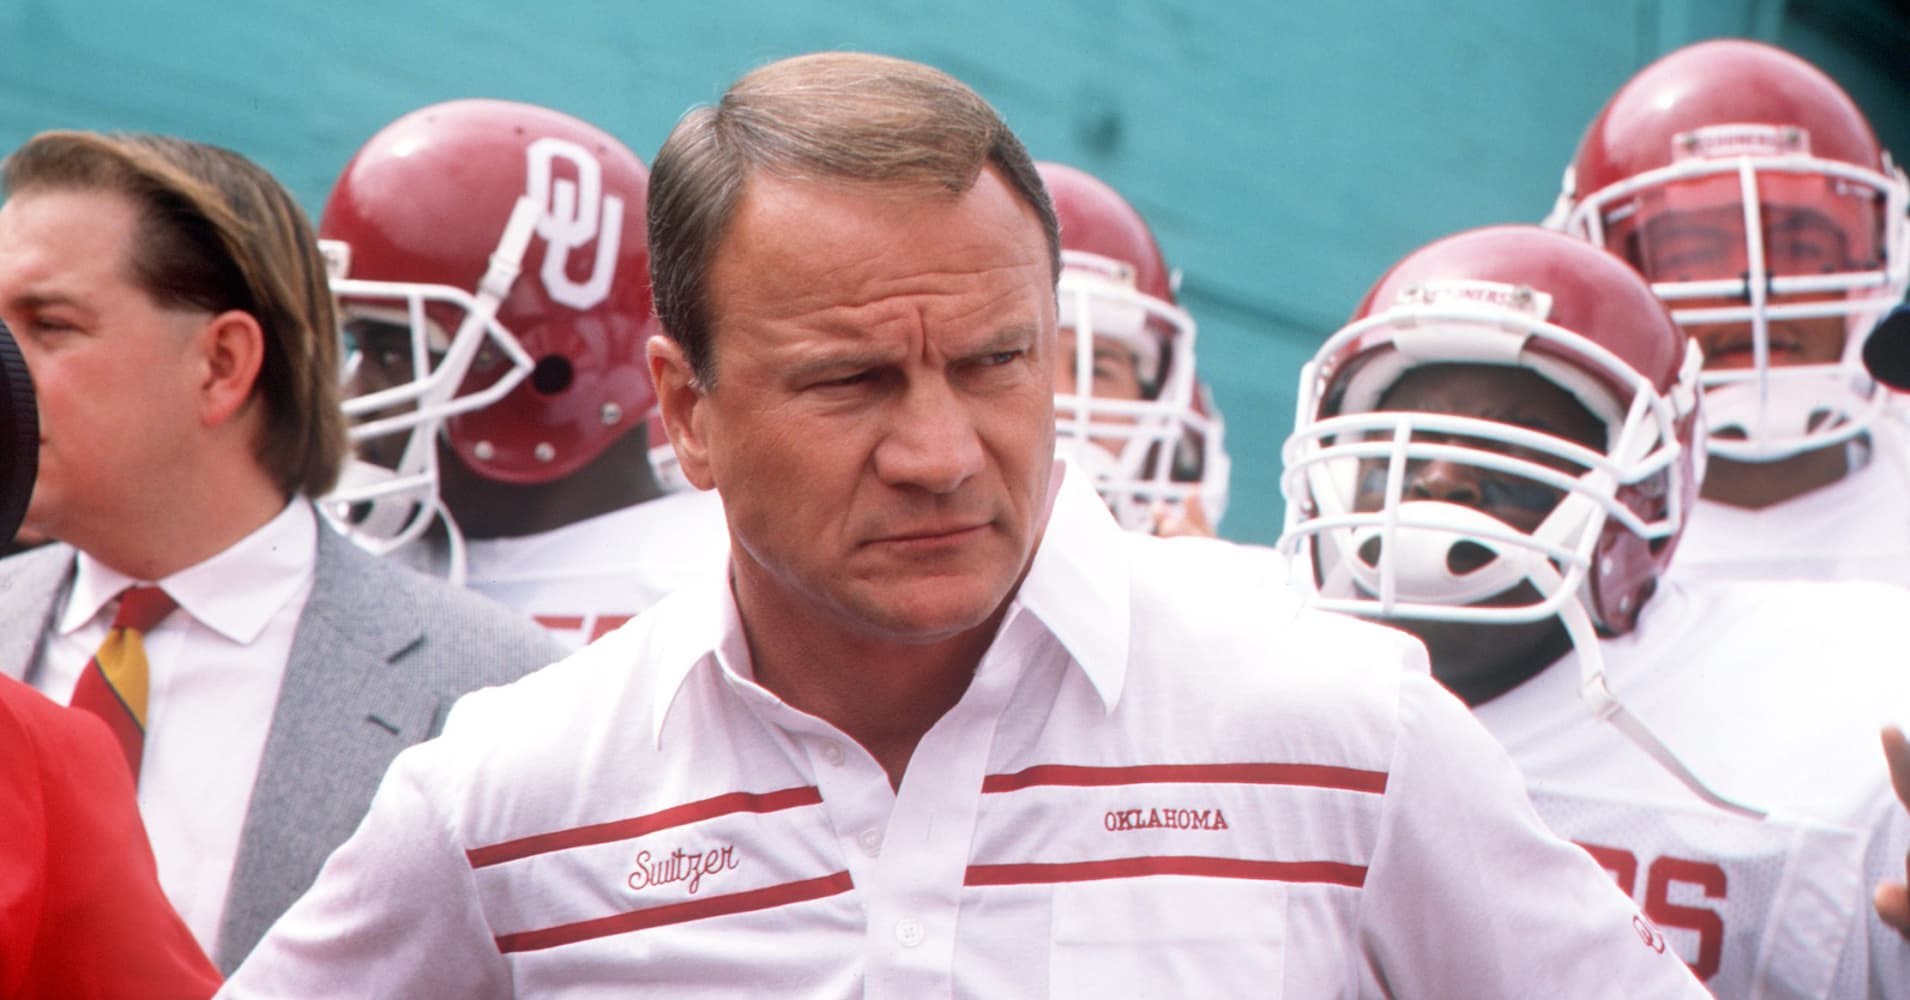 Barry switzer s coaches cabana comments on sooners games